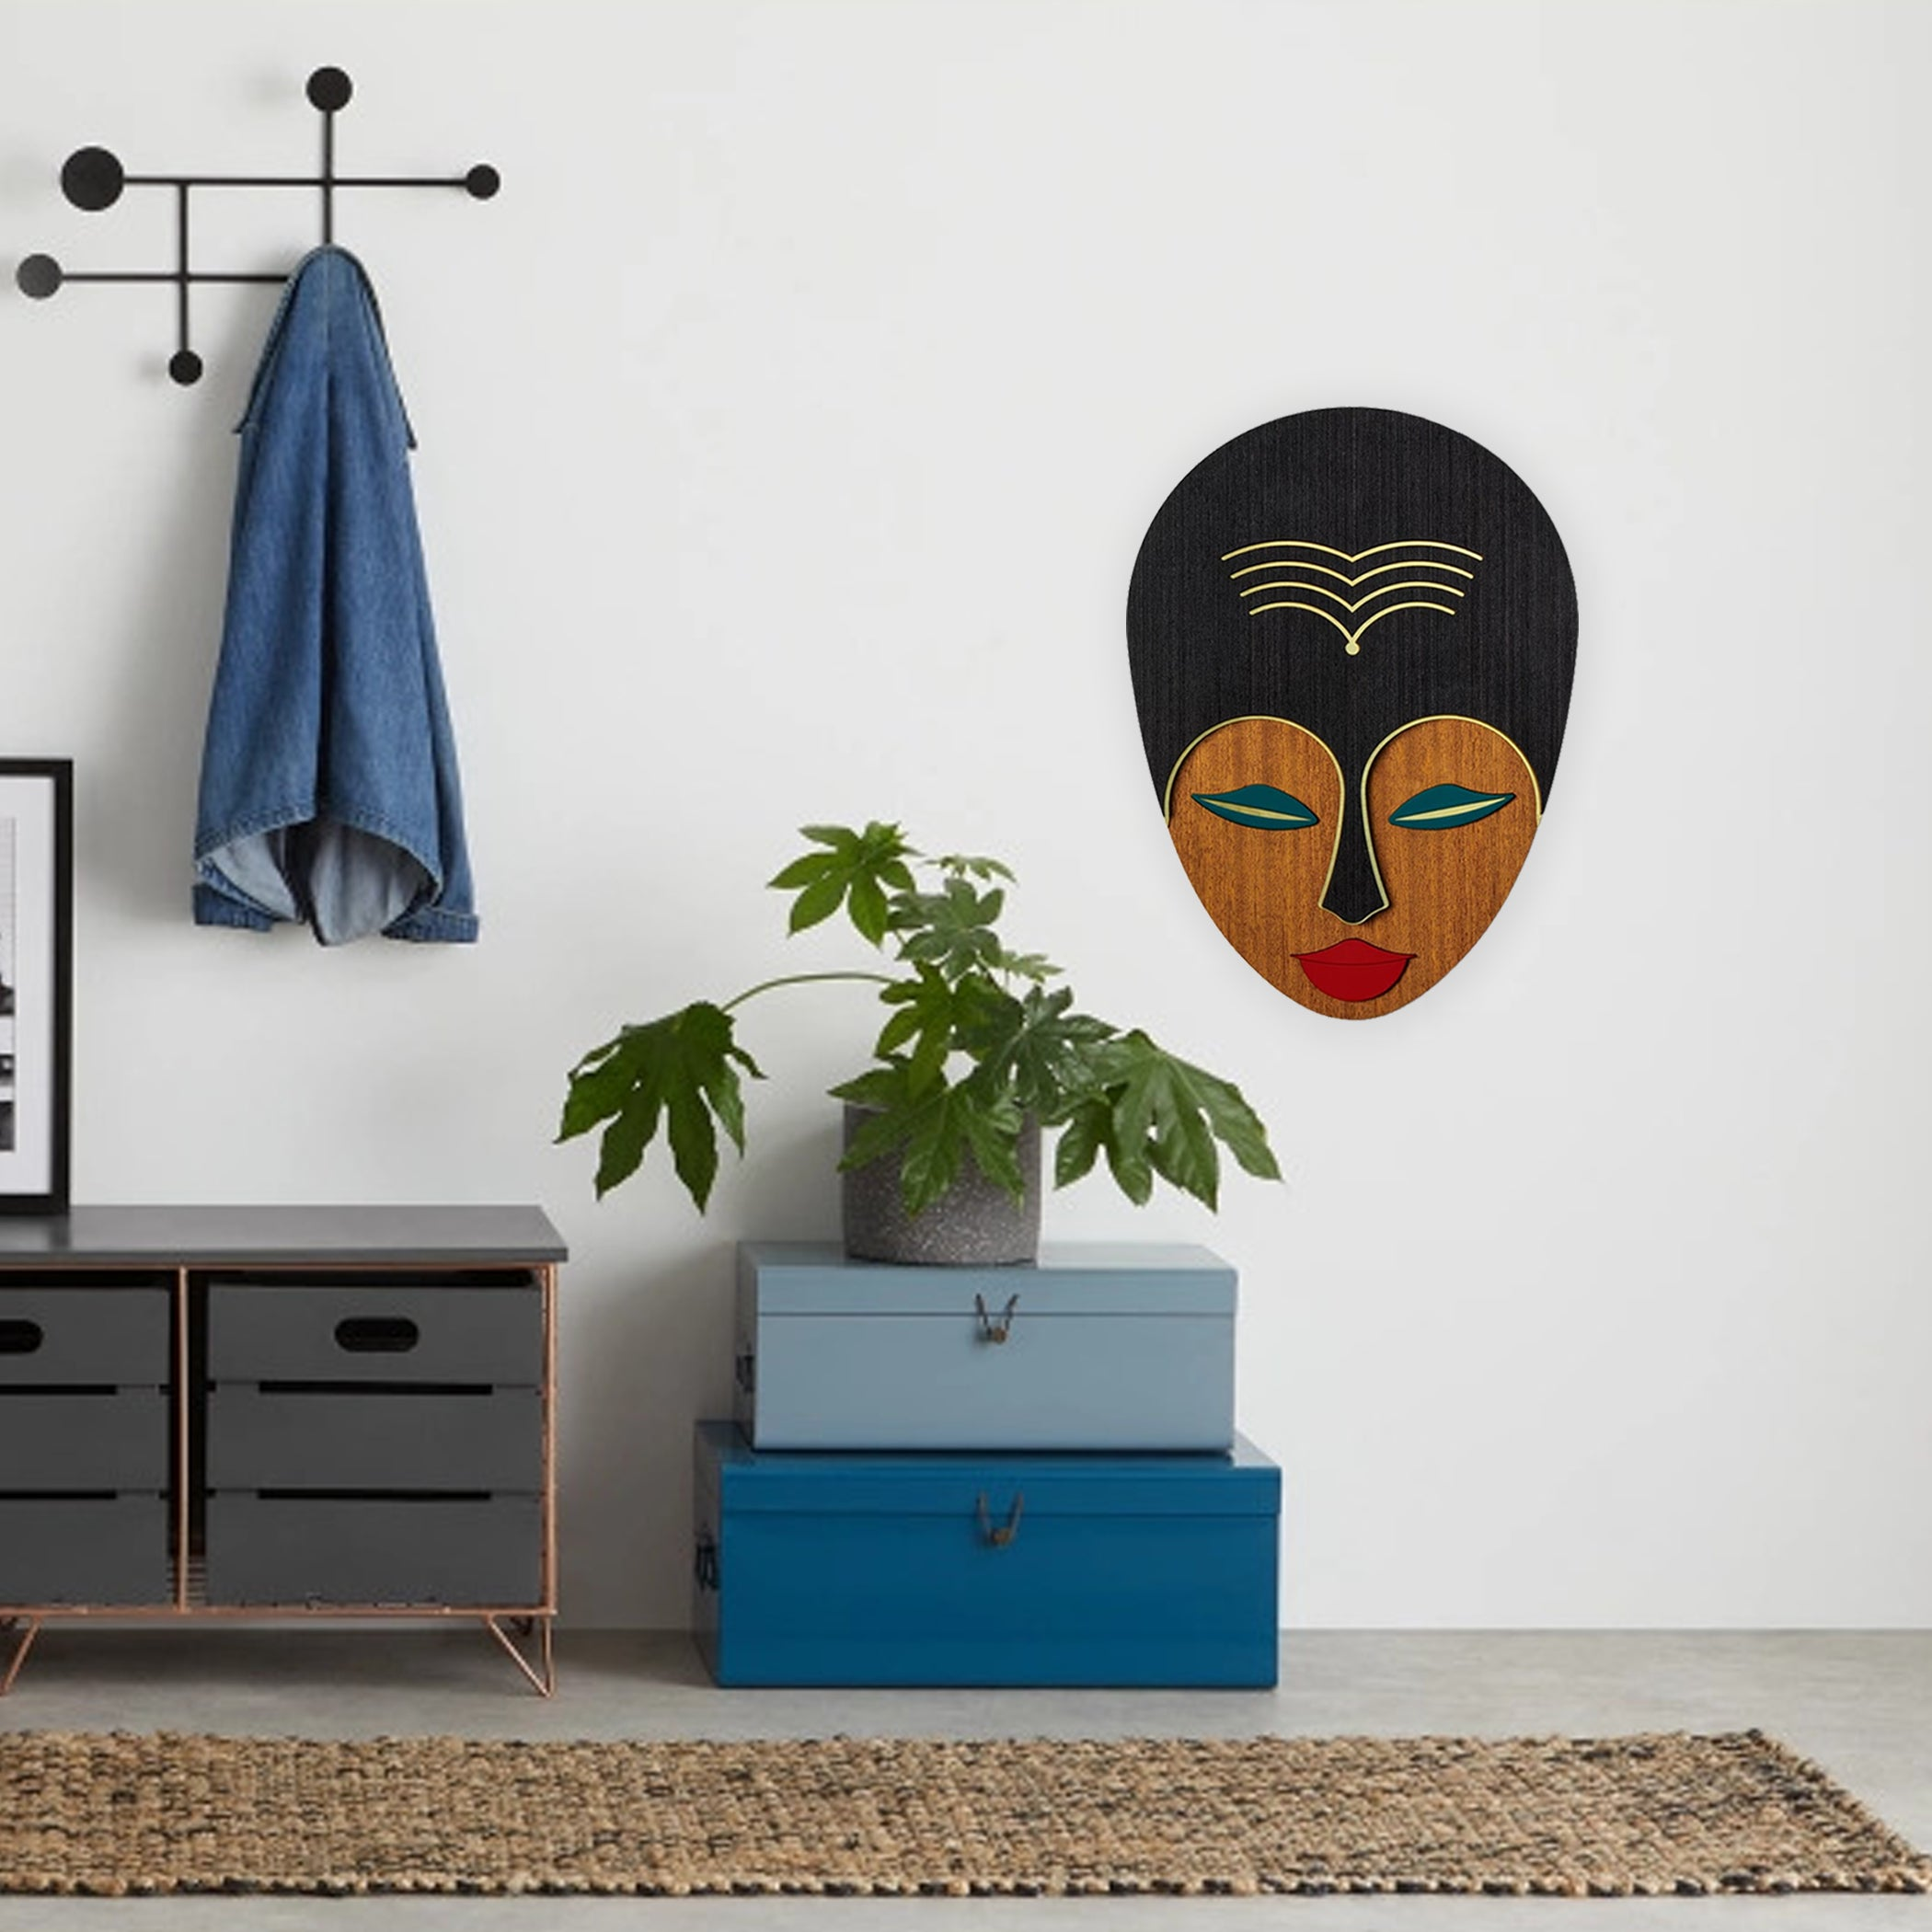 Wall Decor with Female Face